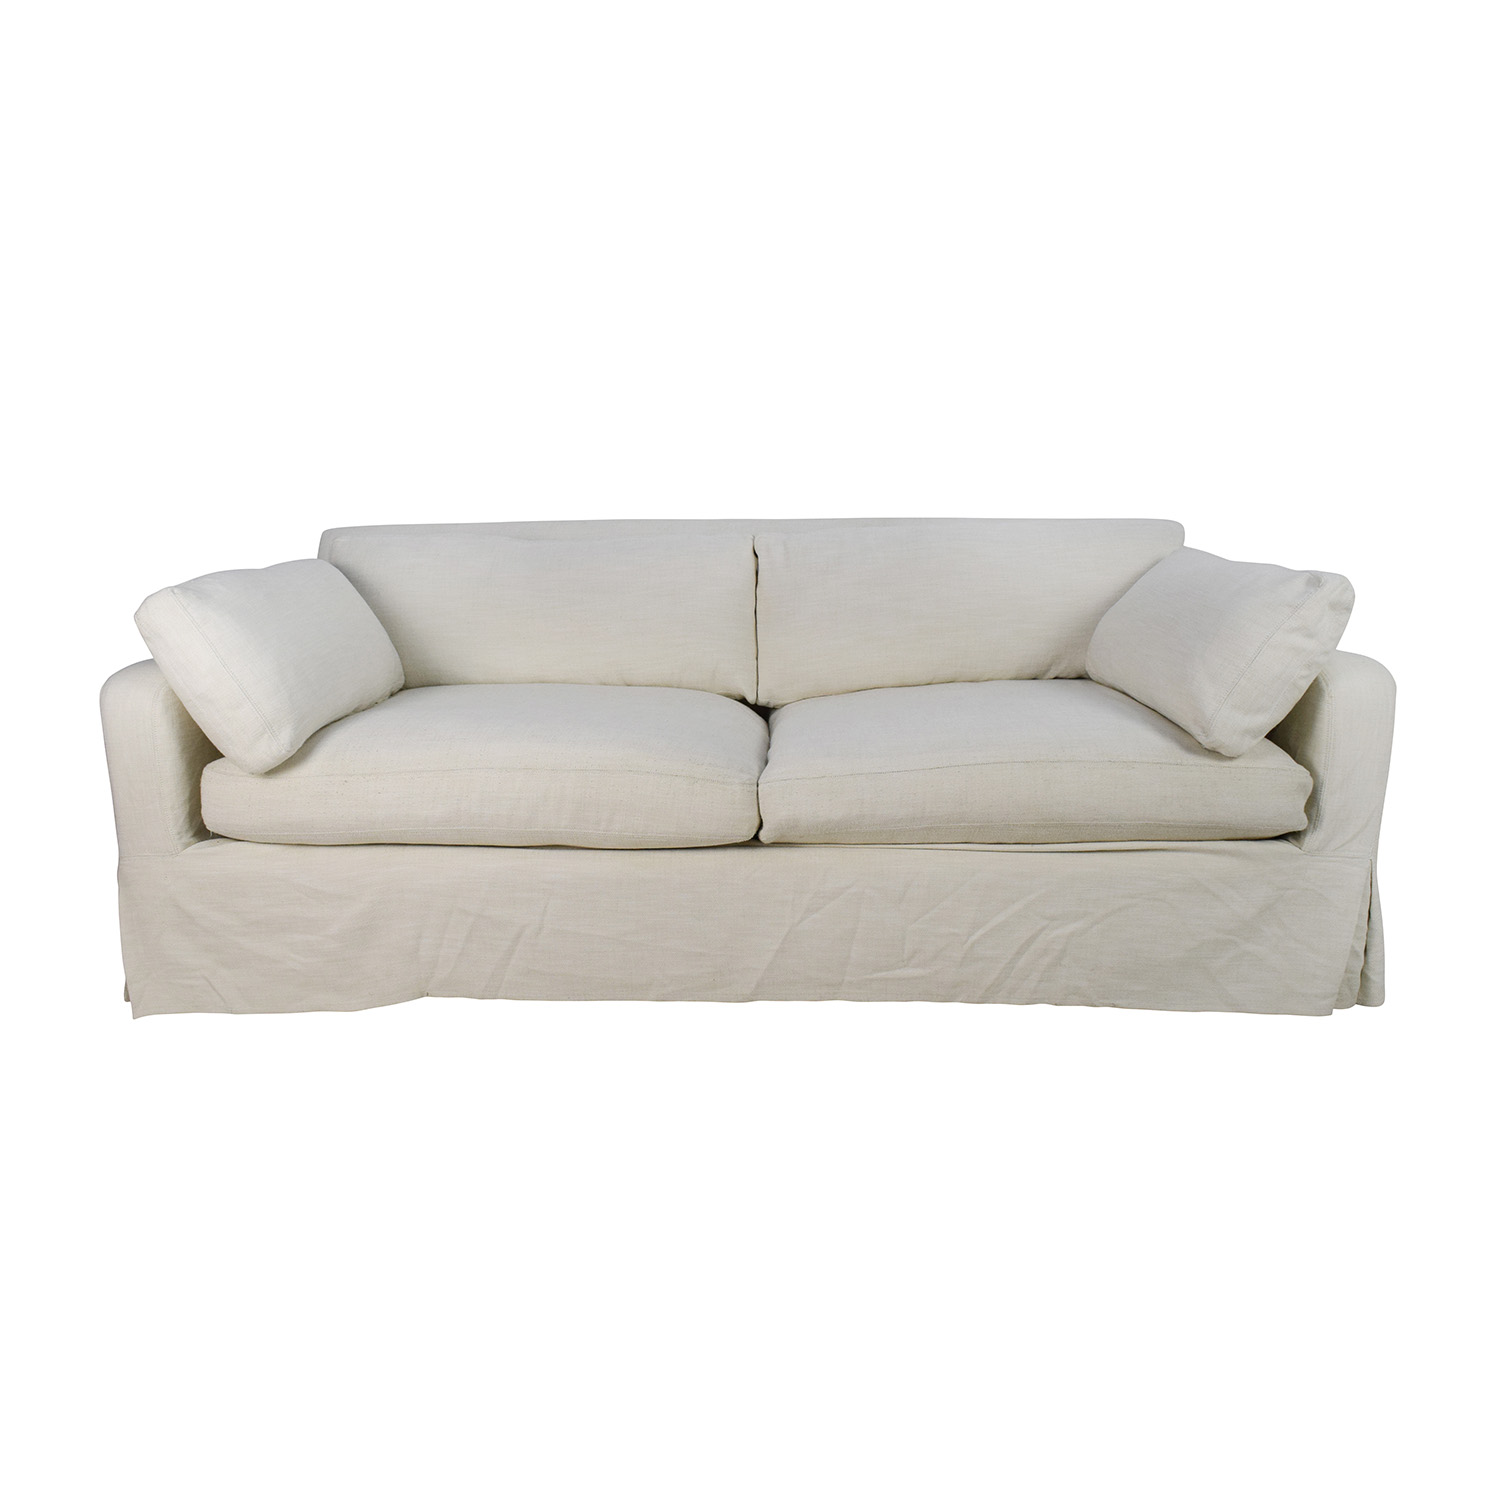 Restoration Hardware Restoration Hardware Belgian Track Arm Slipcovered Sofa used